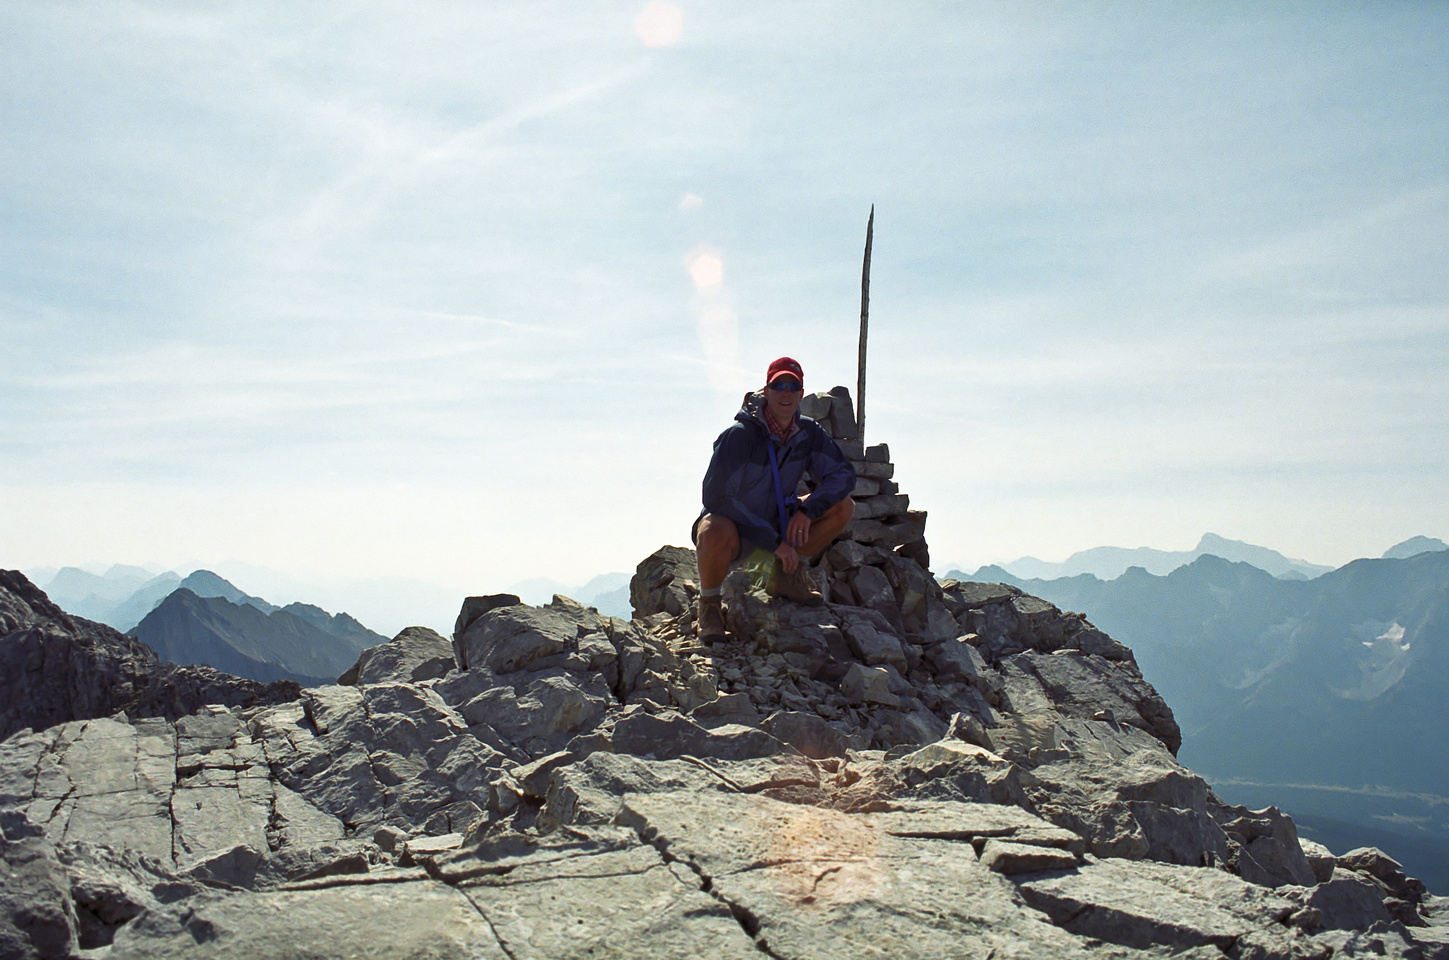 Vern at the summit of Pocaterra